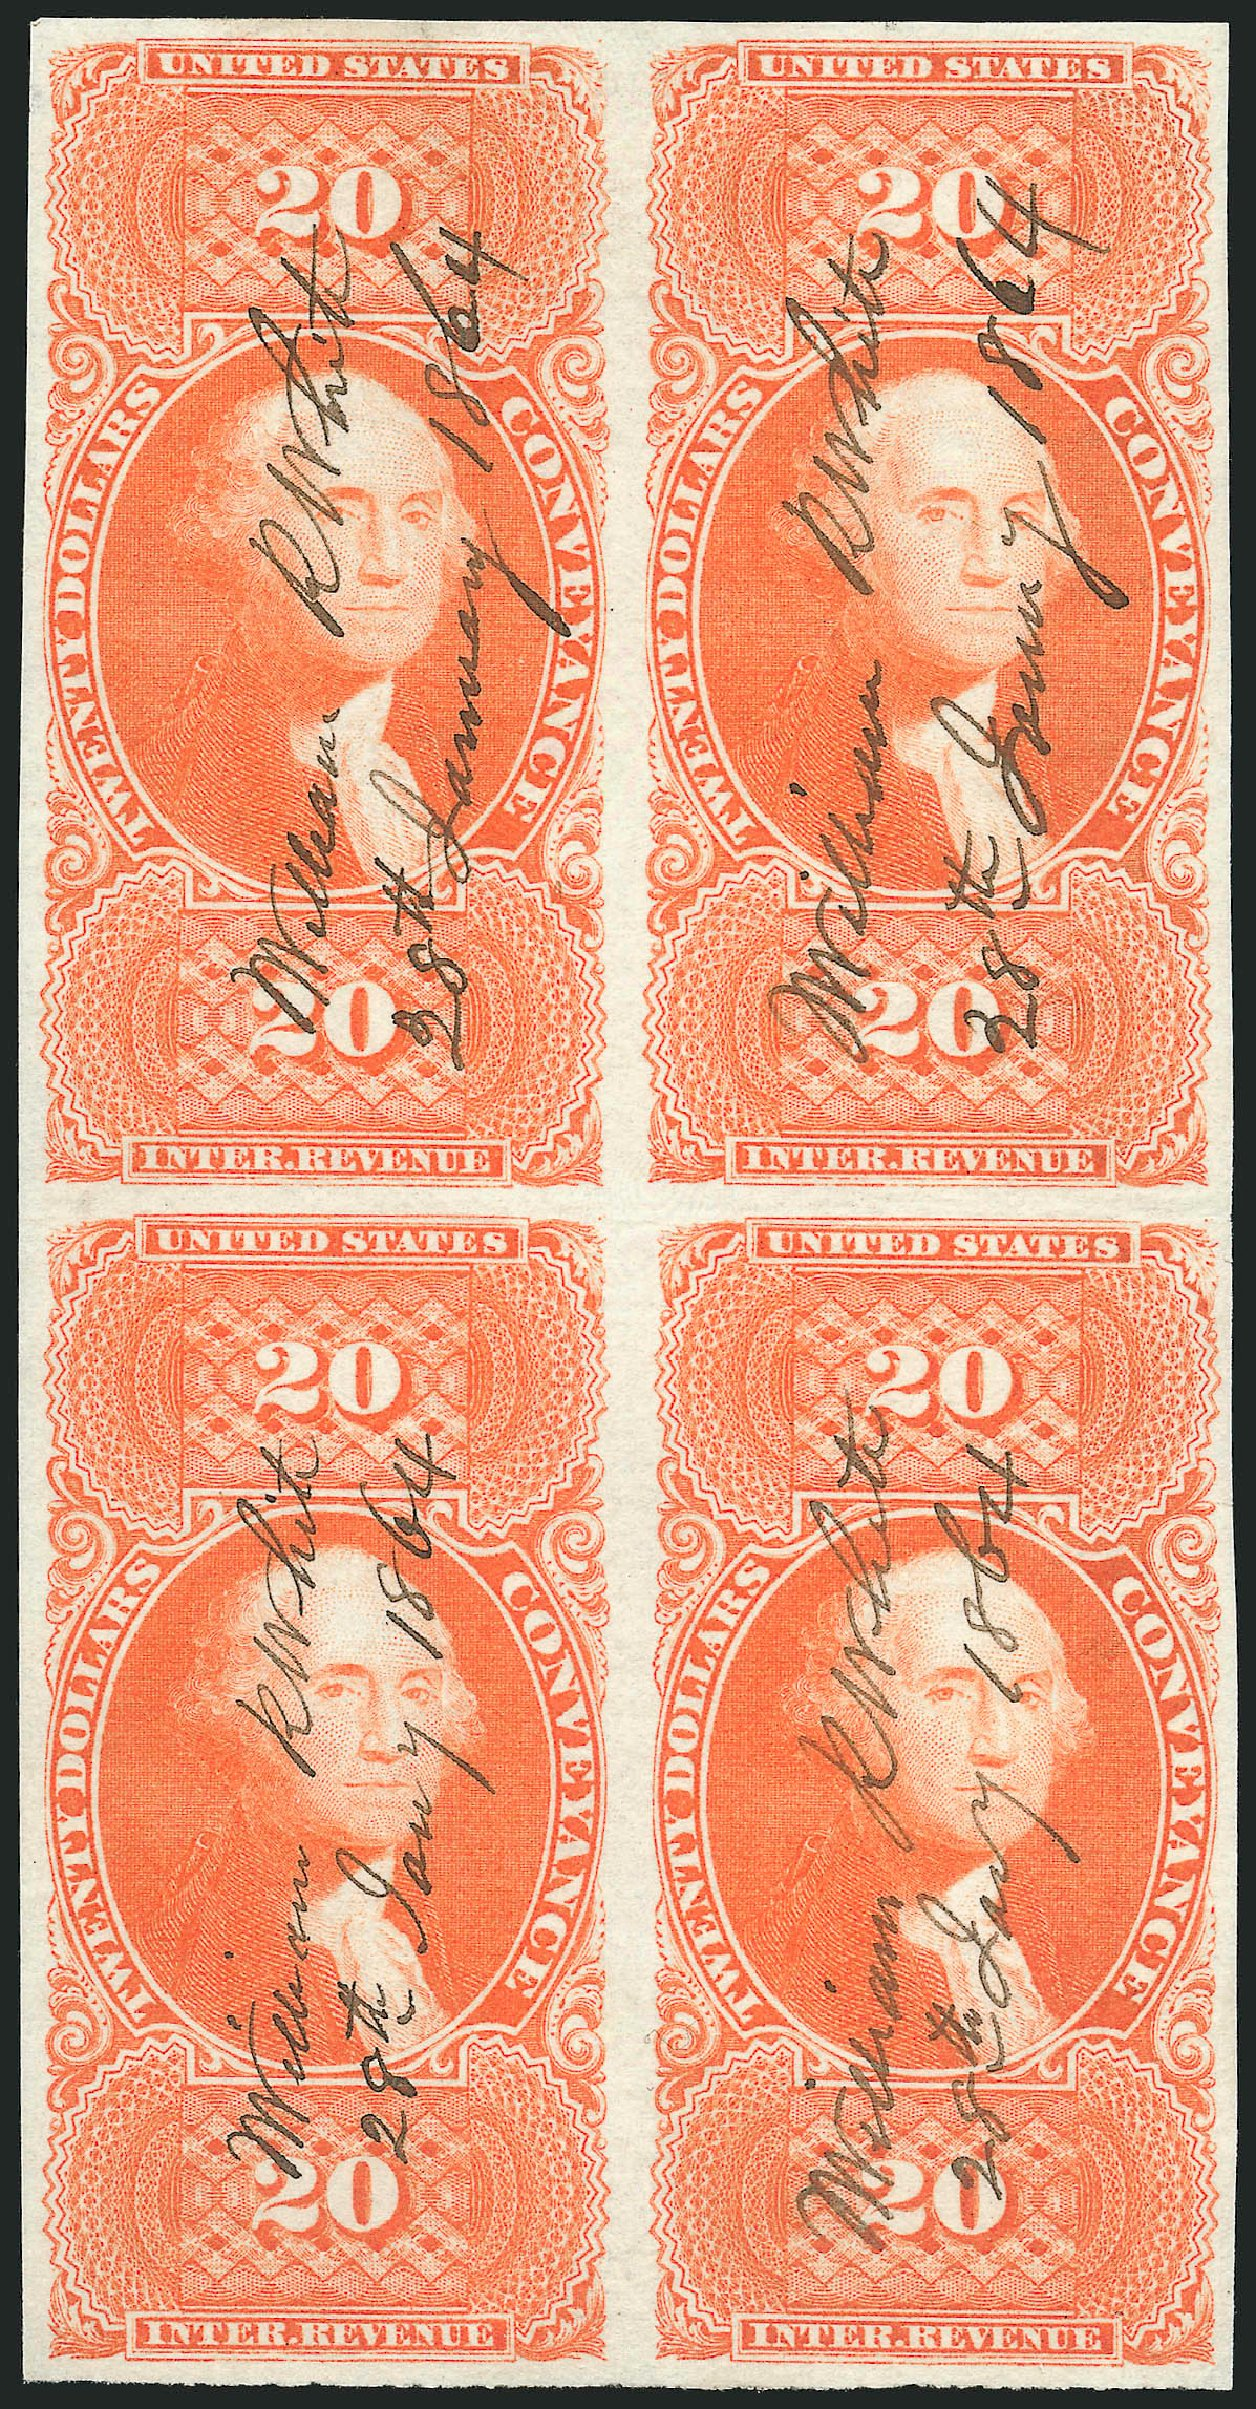 Value of US Stamps Scott Catalog #R98 - 1862 US$20.00 Revenue Conveyance. Robert Siegel Auction Galleries, Dec 2014, Sale 1089, Lot 379